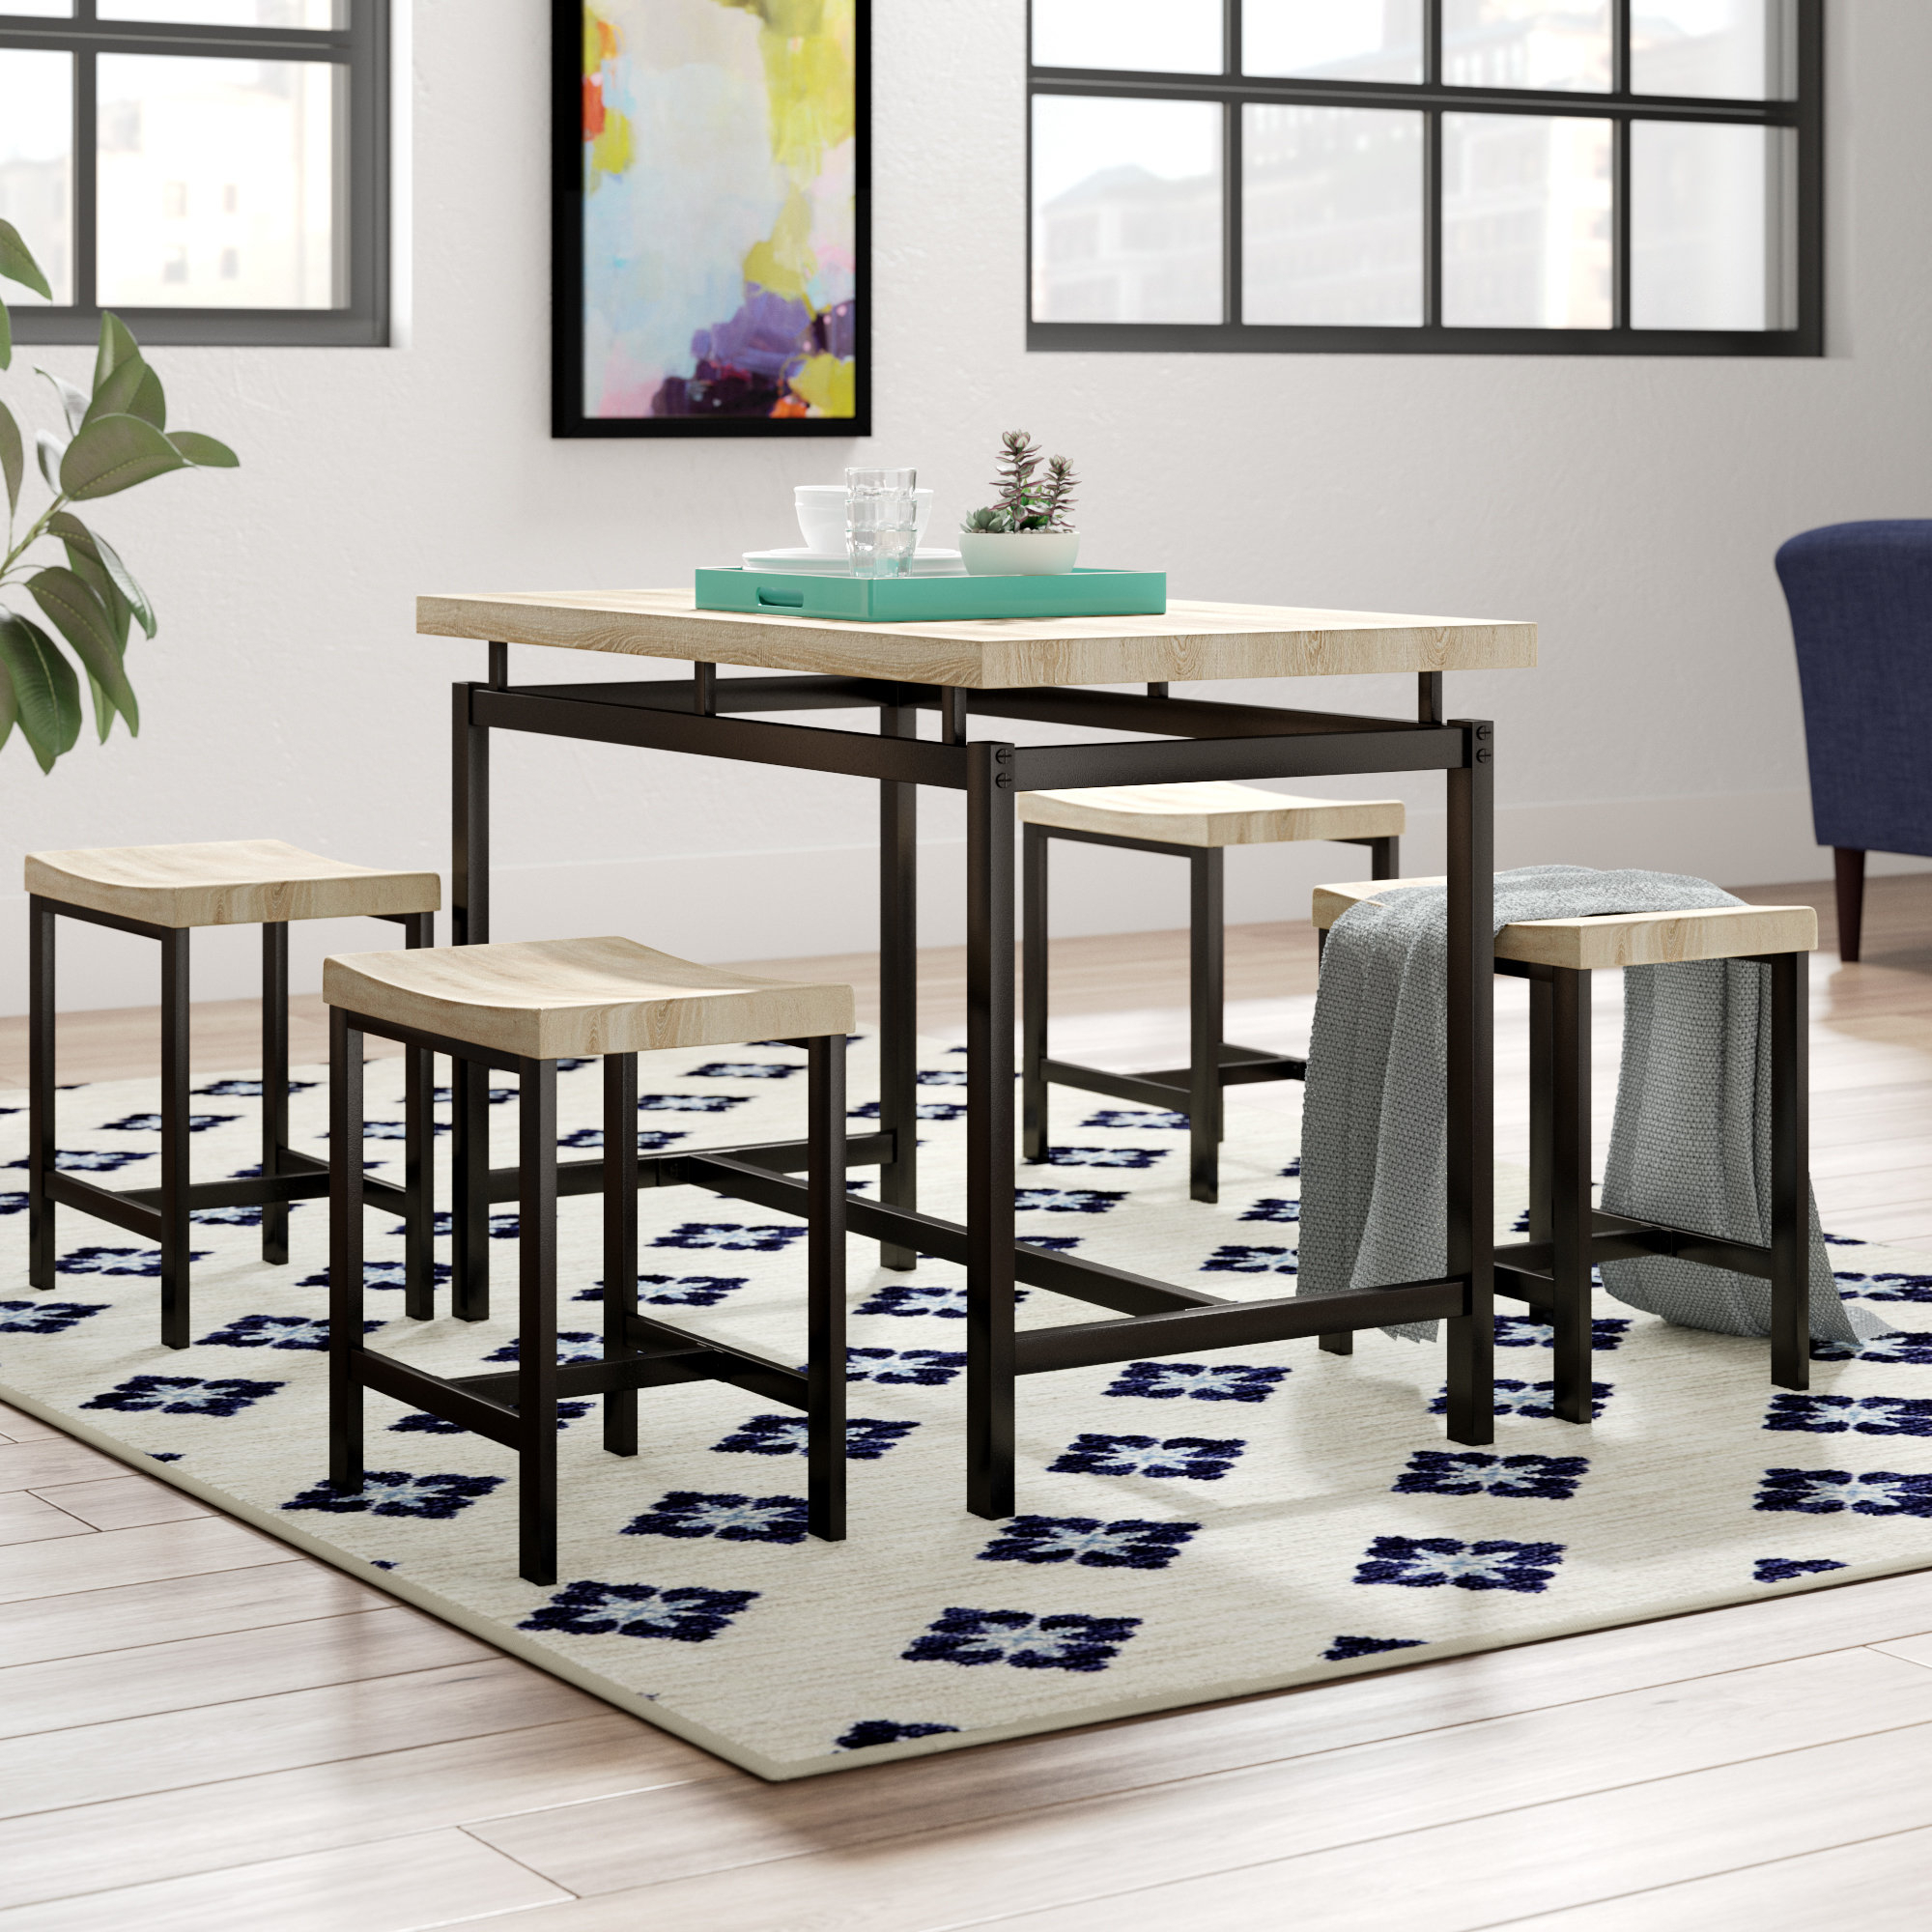 Wayfair With Current Weatherholt Dining Tables (View 20 of 25)